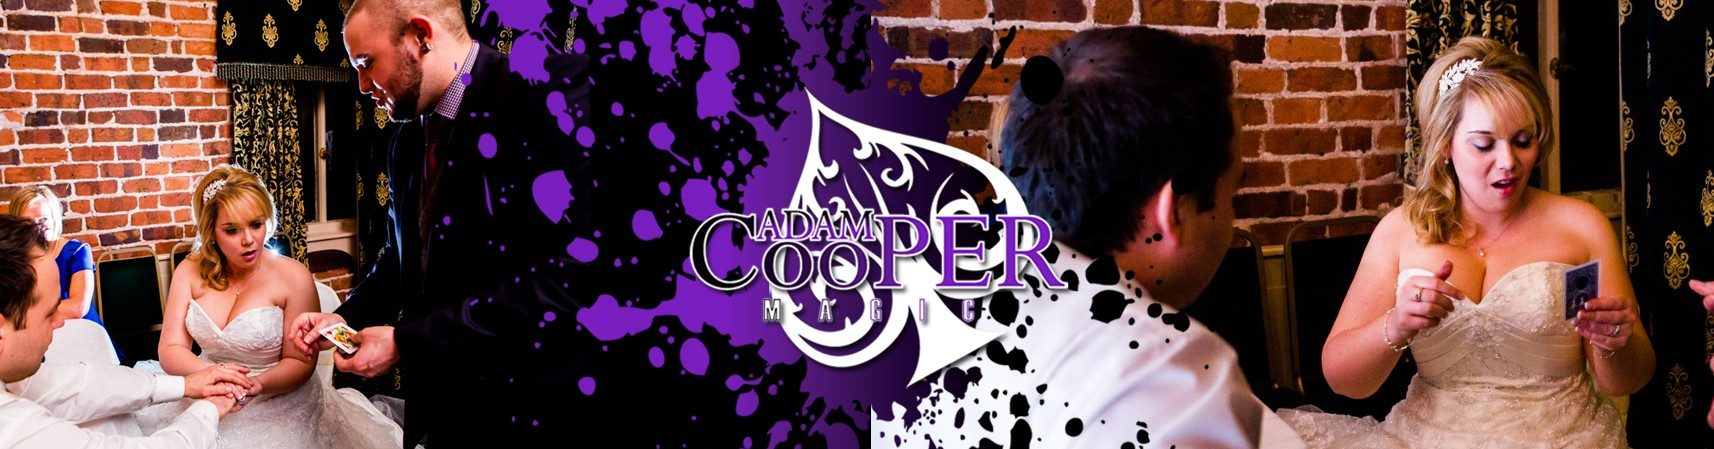 Adam Cooper,Magician,Wedding,Entertainer,Close up,West Midlands,Wolverhampton,Lichfield,Stafford,Corporate,Birmingham,Magic